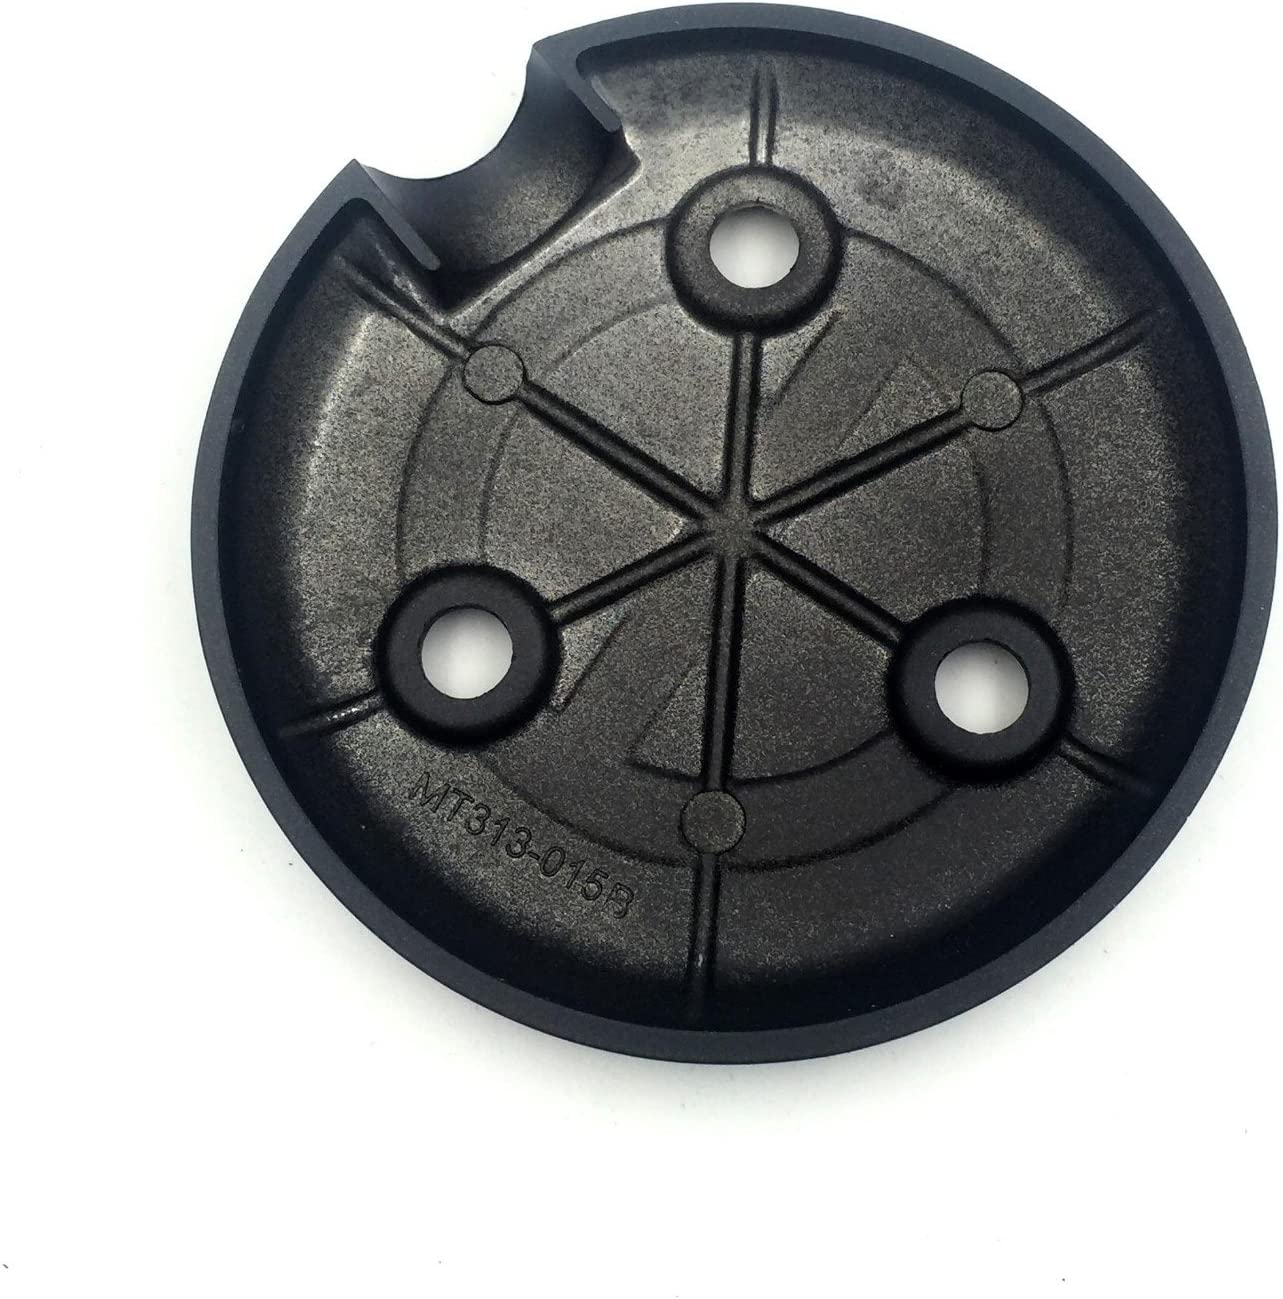 B00YWCNA7C XKMT-OEM Stytle Engine Clutch Cover Compatible With Honda Cbr900Rr 1996-1997 96-97 Black Left